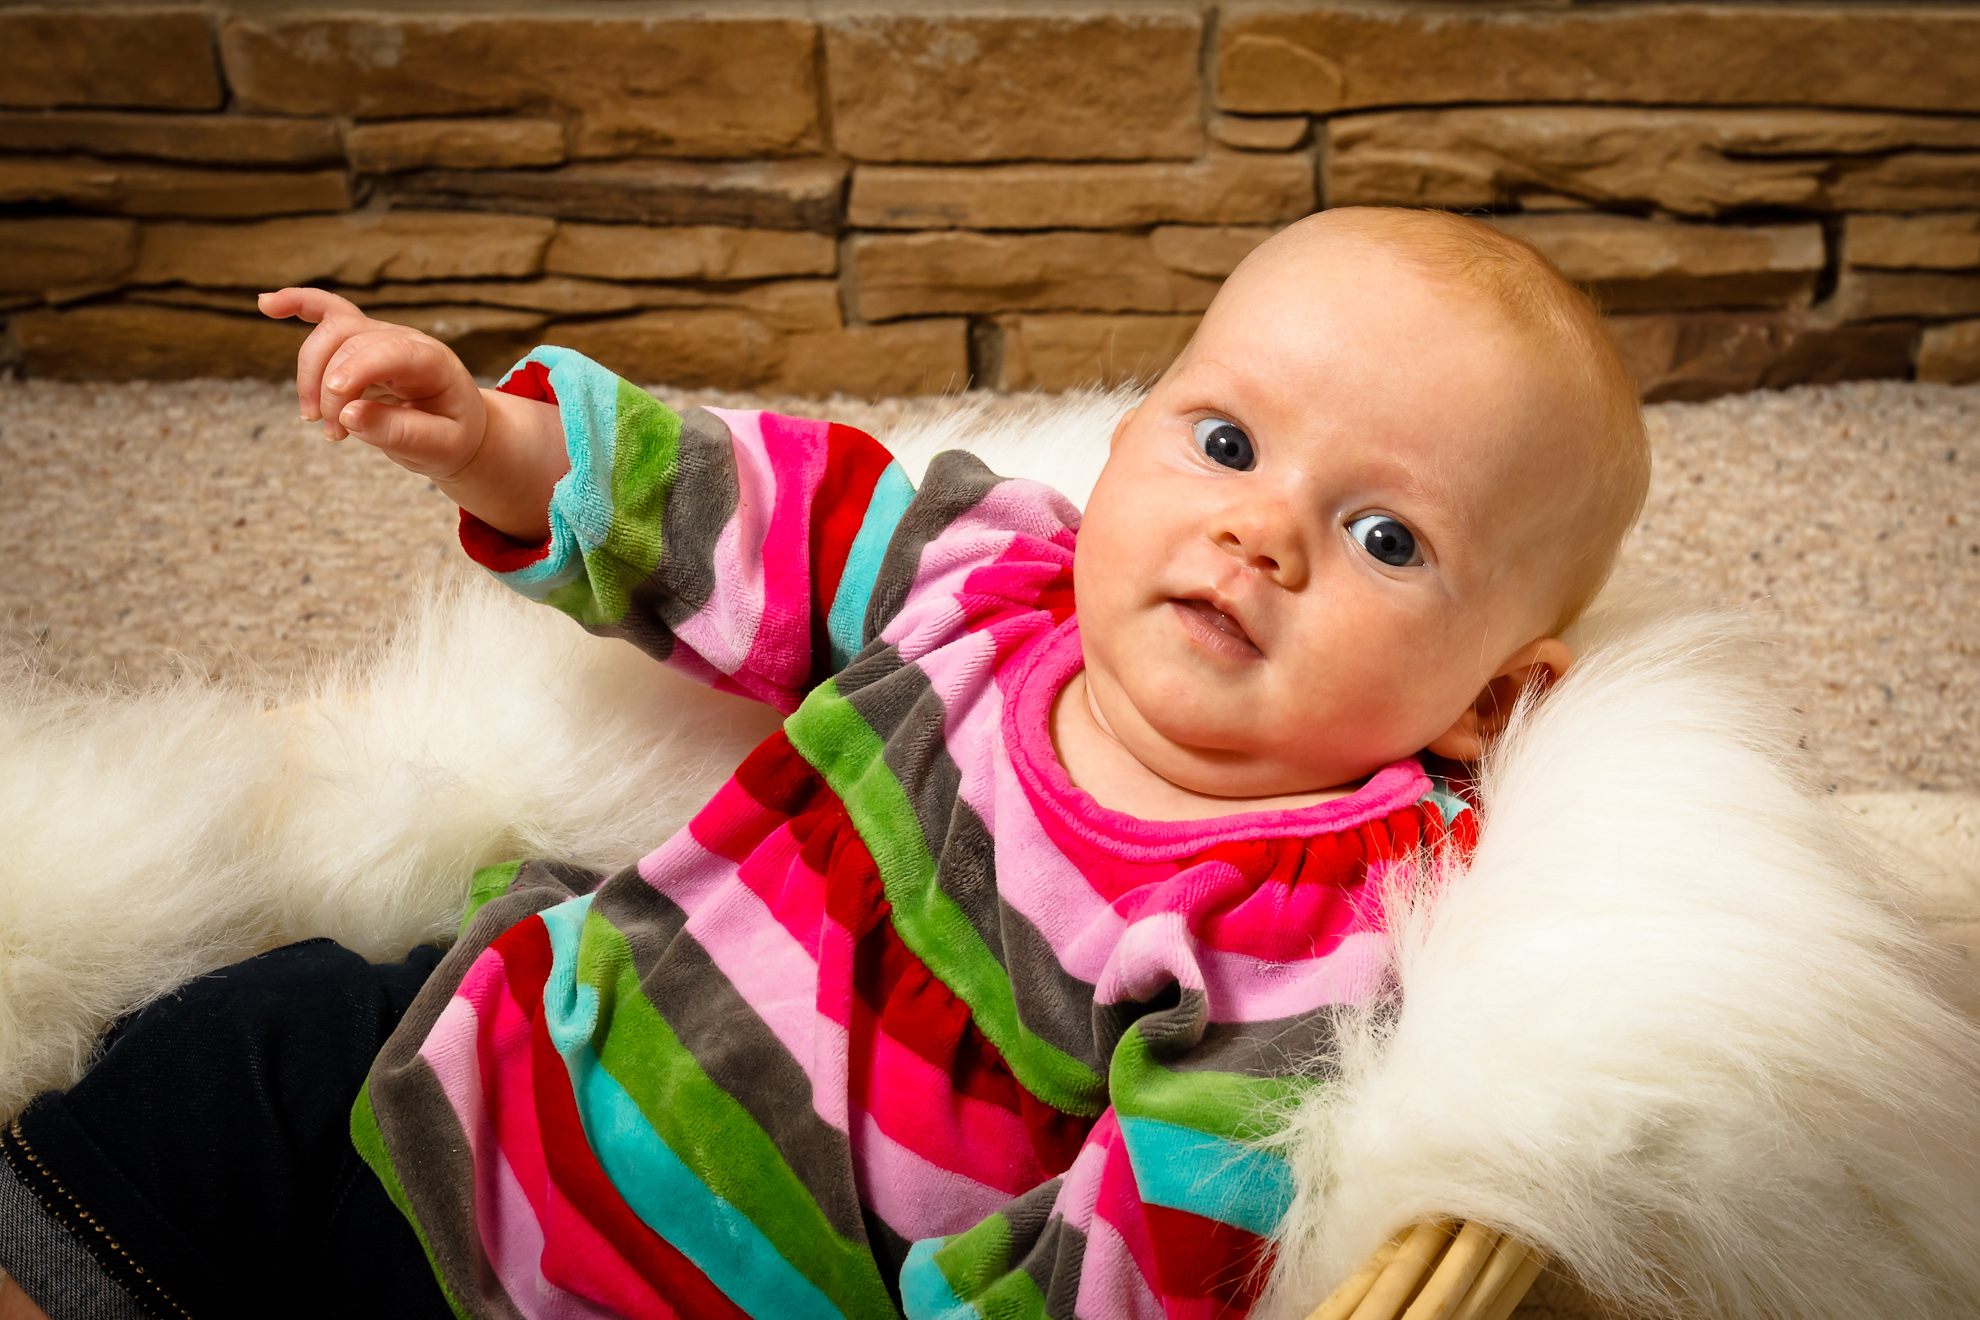 Baby Althea from a recent Calgary Family Portrait Session